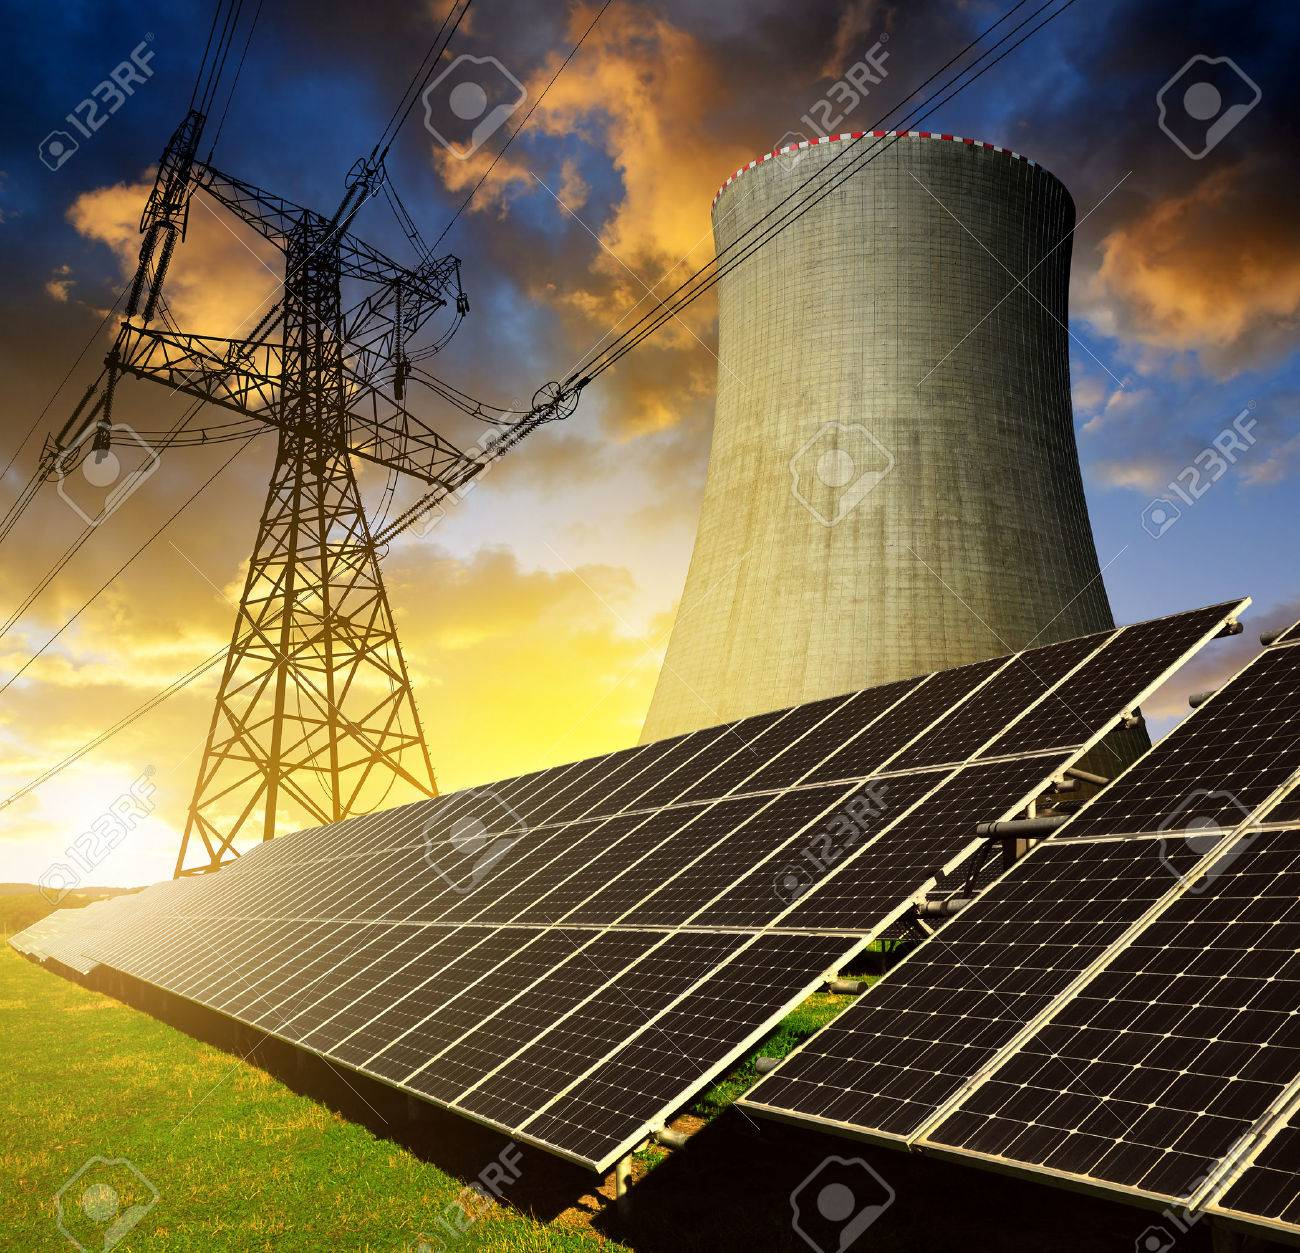 Solar energy panels, nuclear power plant and electricity pylon at sunset - 47993564